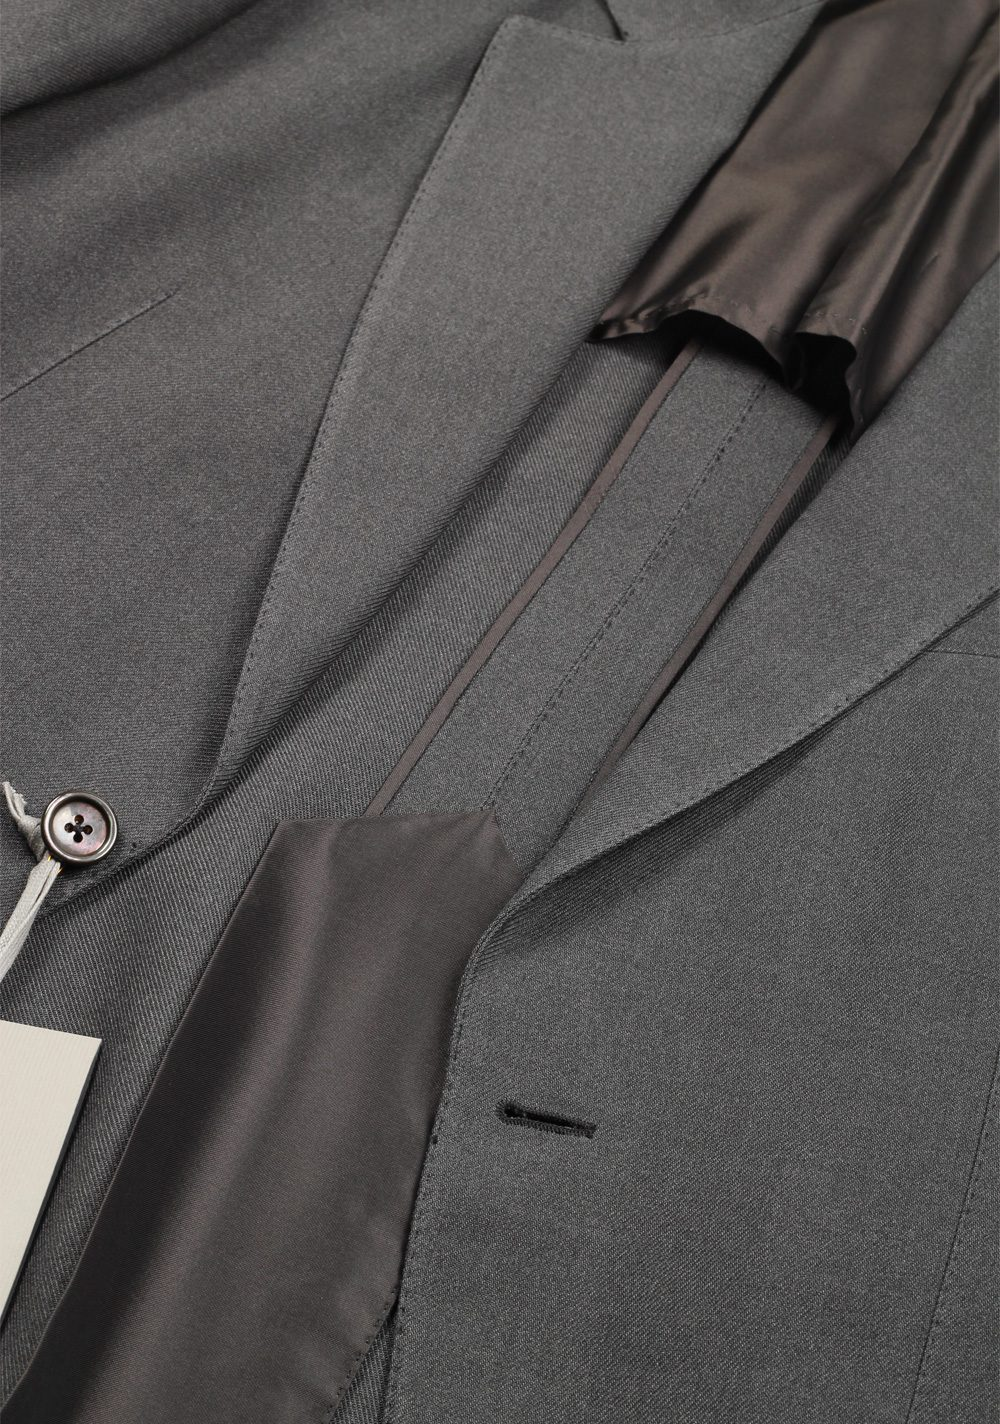 TOM FORD Buckley Gray Suit Size 48 / 38R U.S. In Wool | Costume Limité